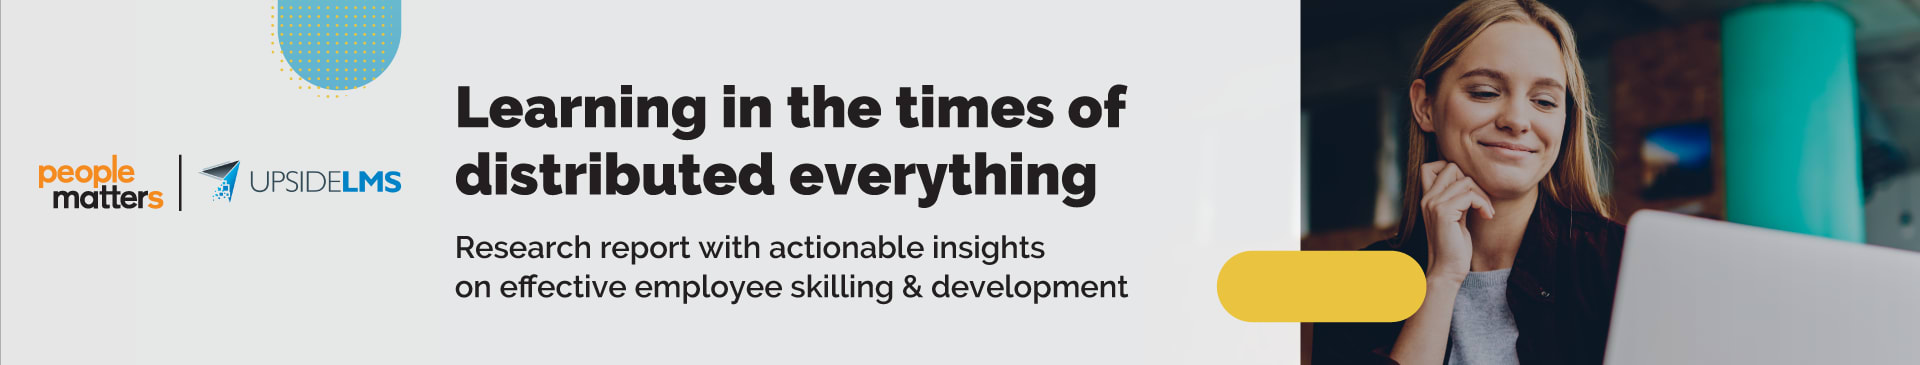 Learning in the times of distributed everything